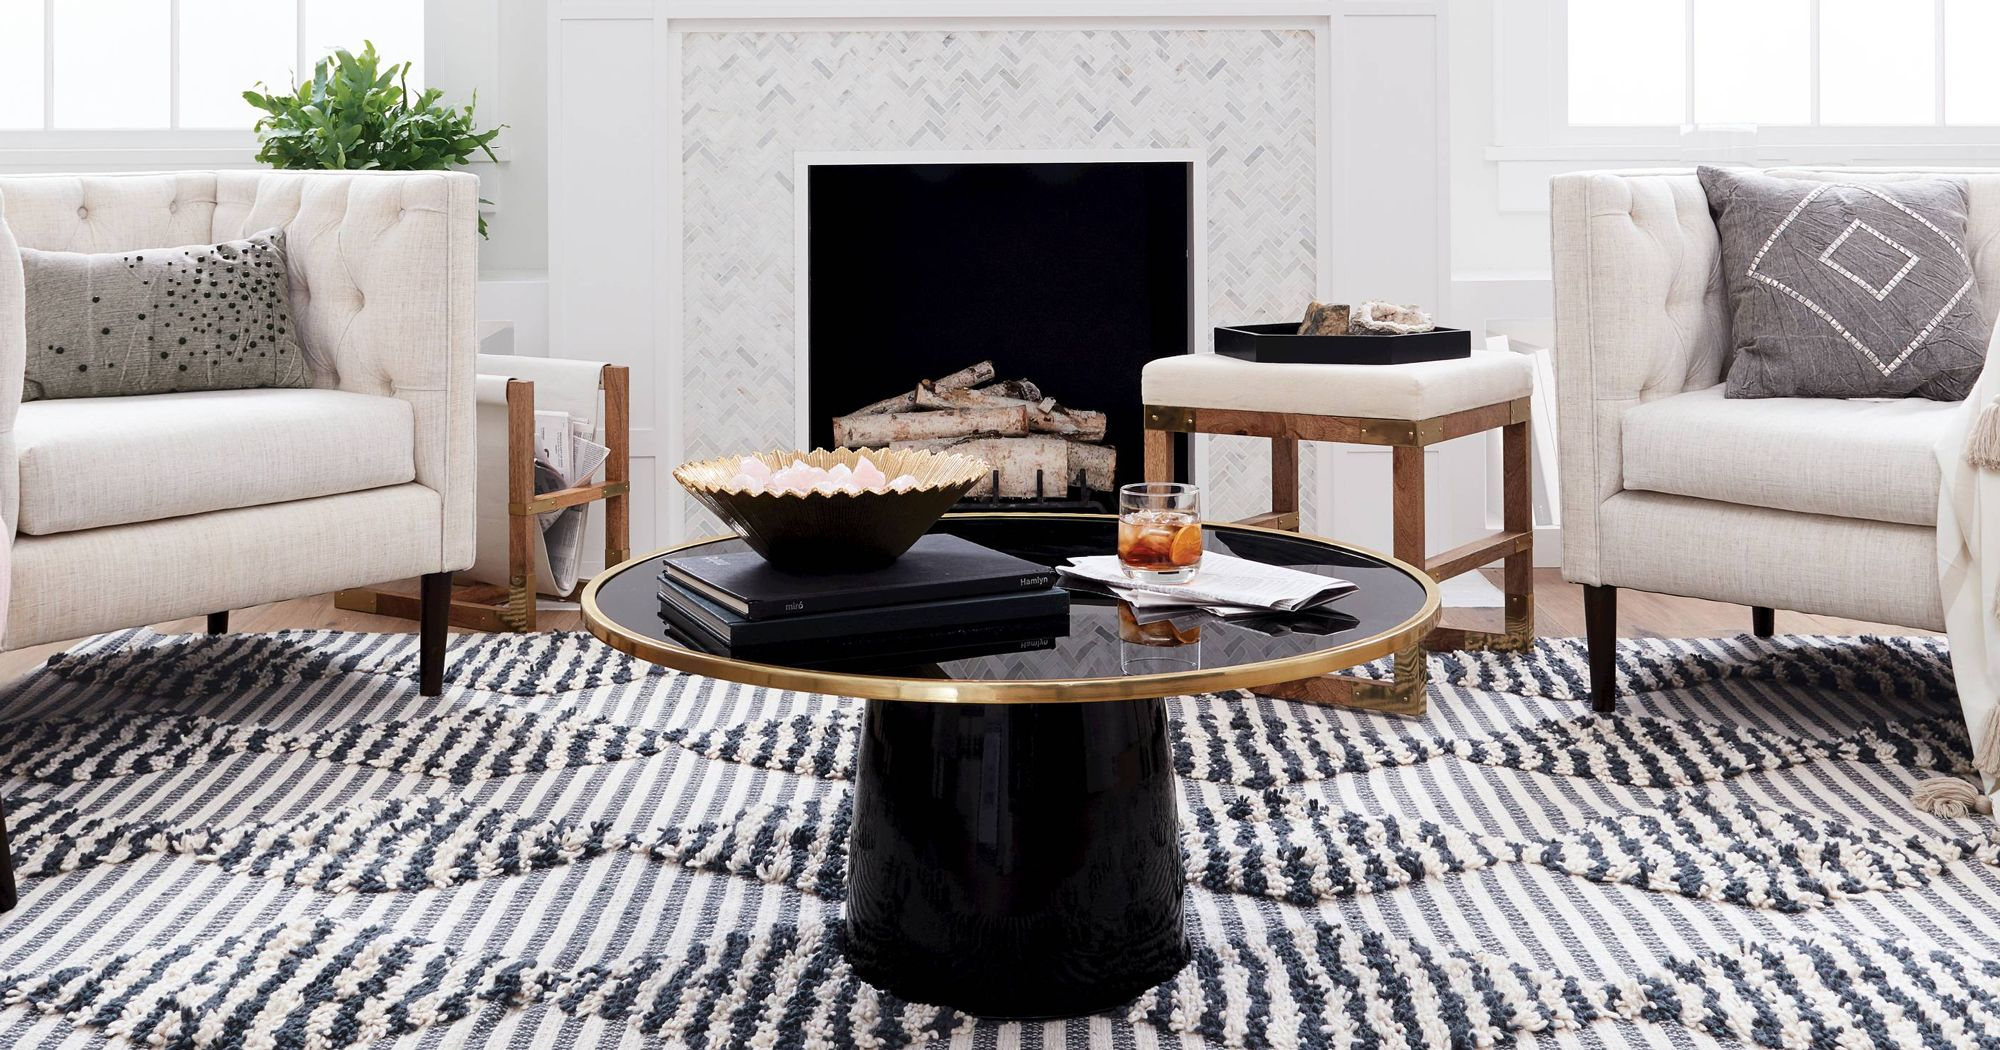 target new nate berkus collection home decor glass agate accent table beach umbrella black metal nesting tables desk lamps antique living room furniture grey dining set side cloth